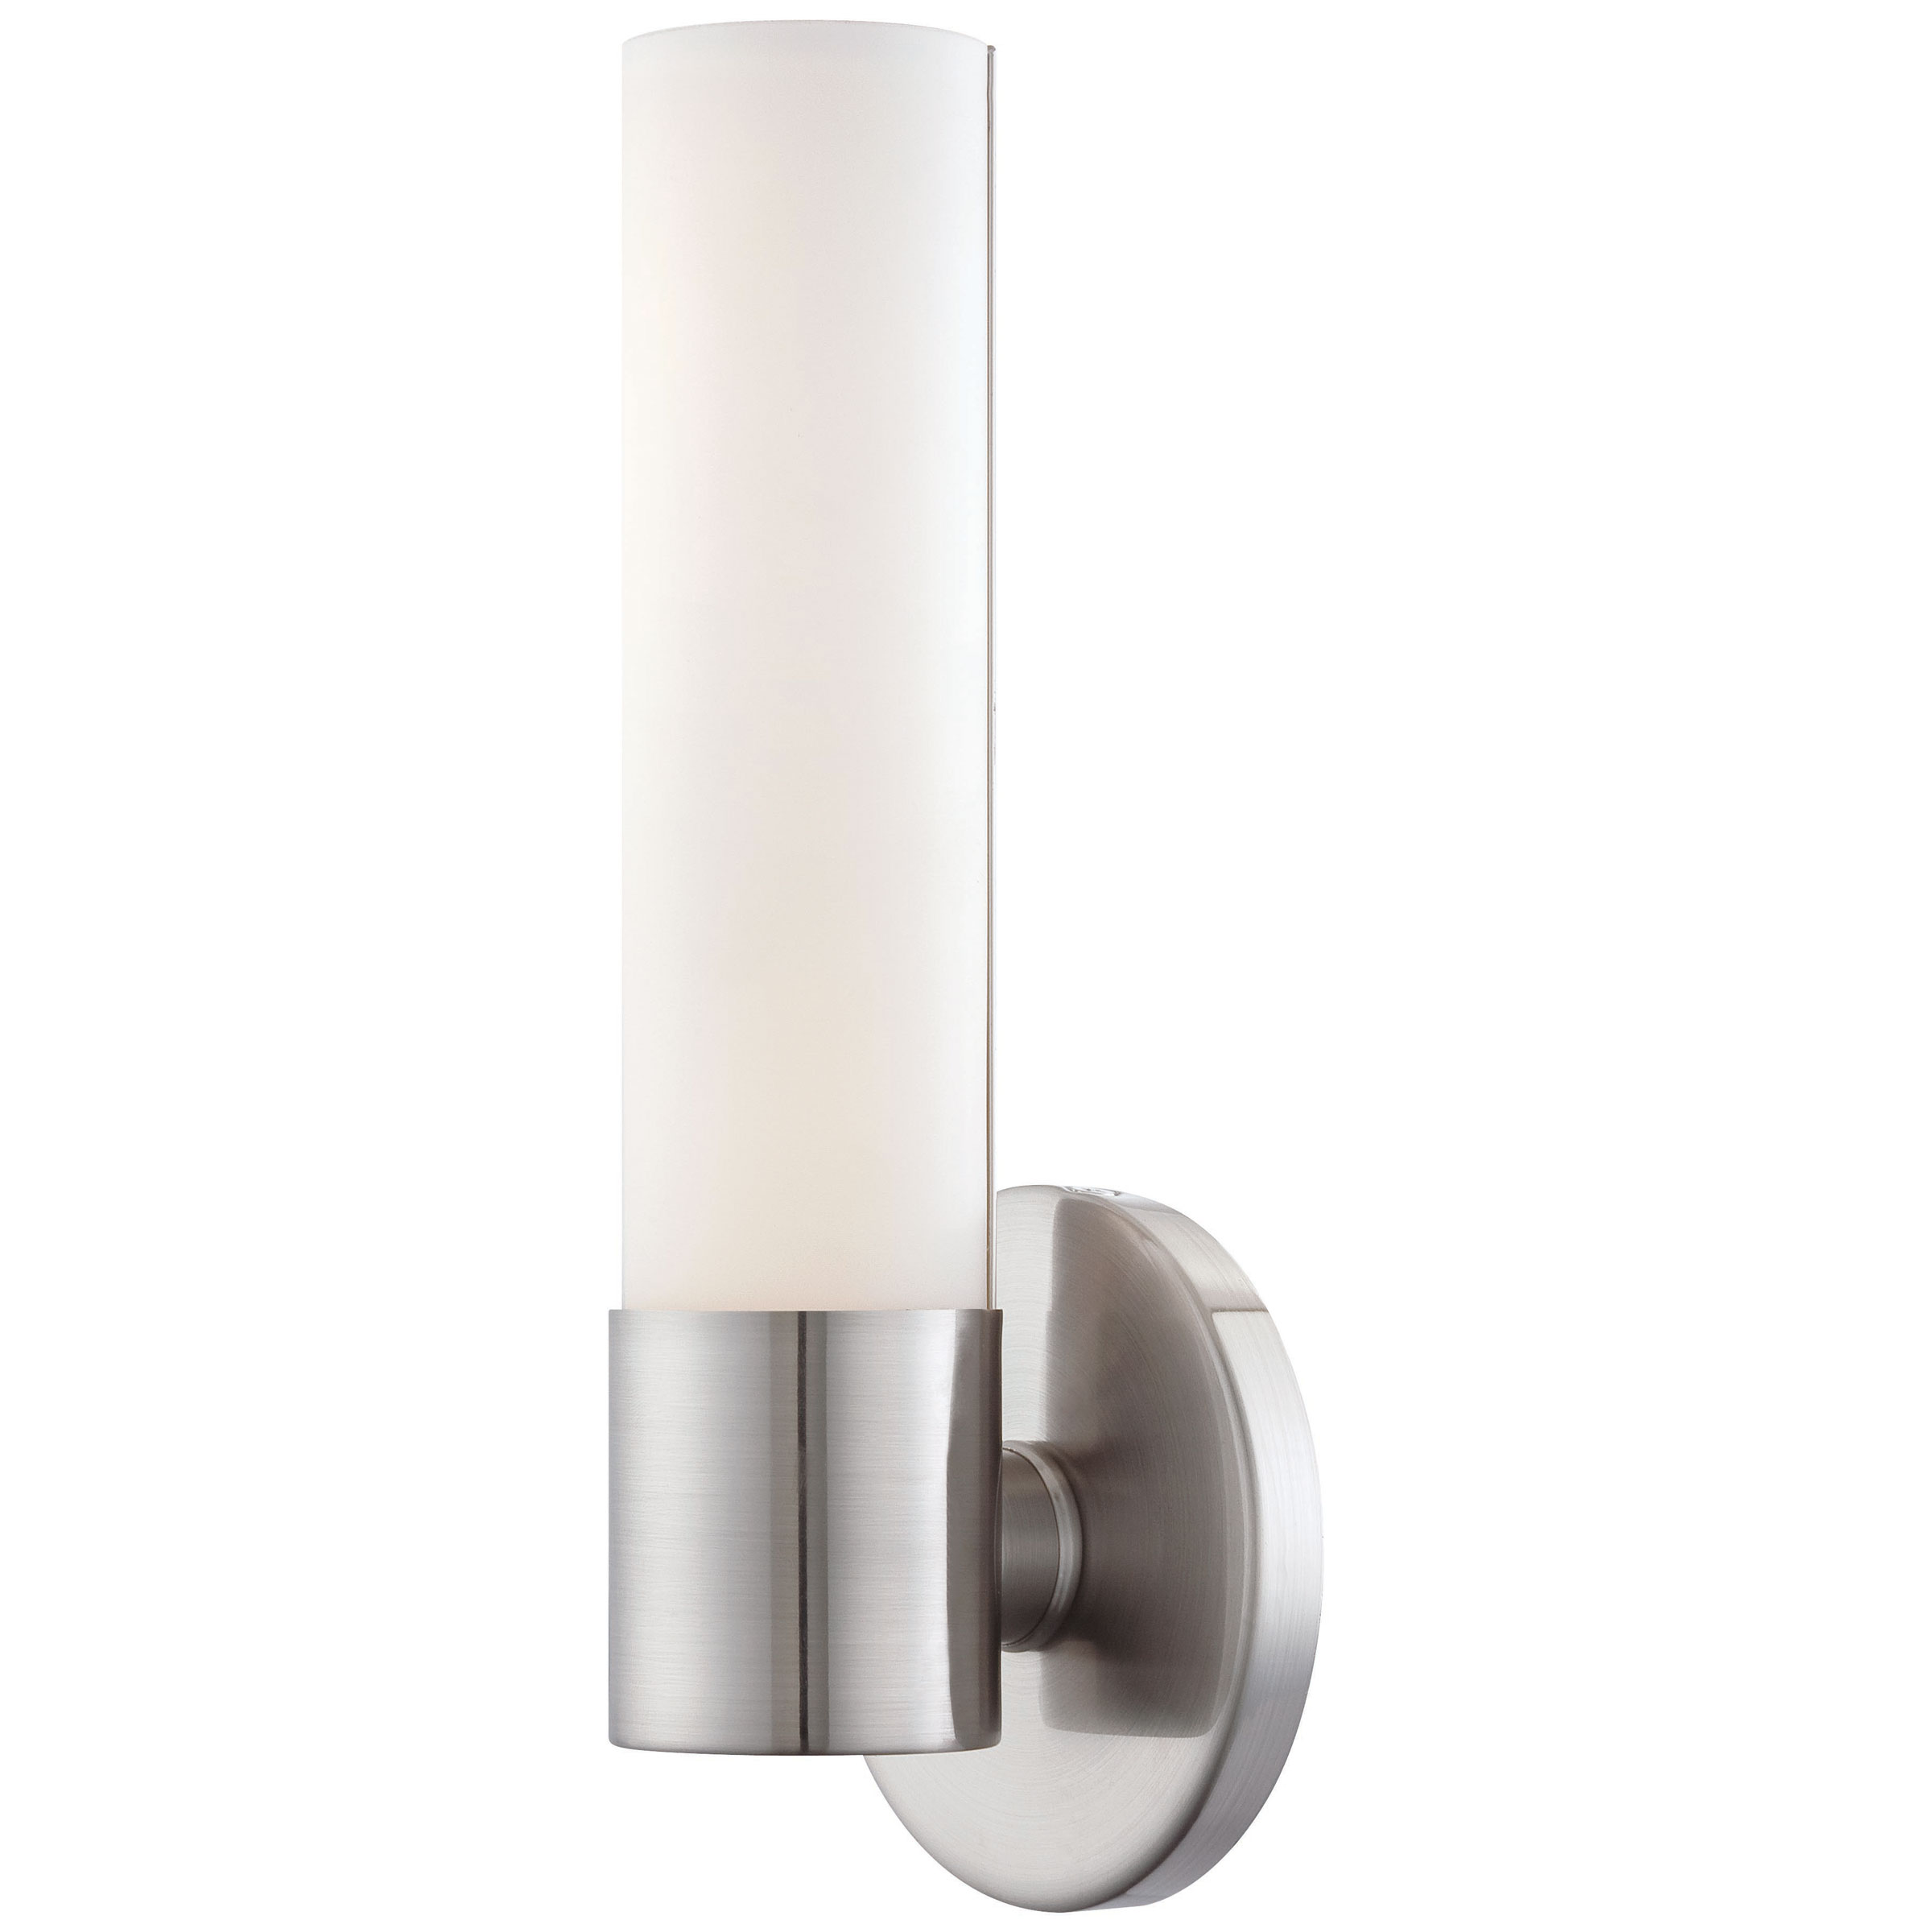 Saber LED ADA Wall Light By George Kovacs PL - Brushed nickel led bathroom light